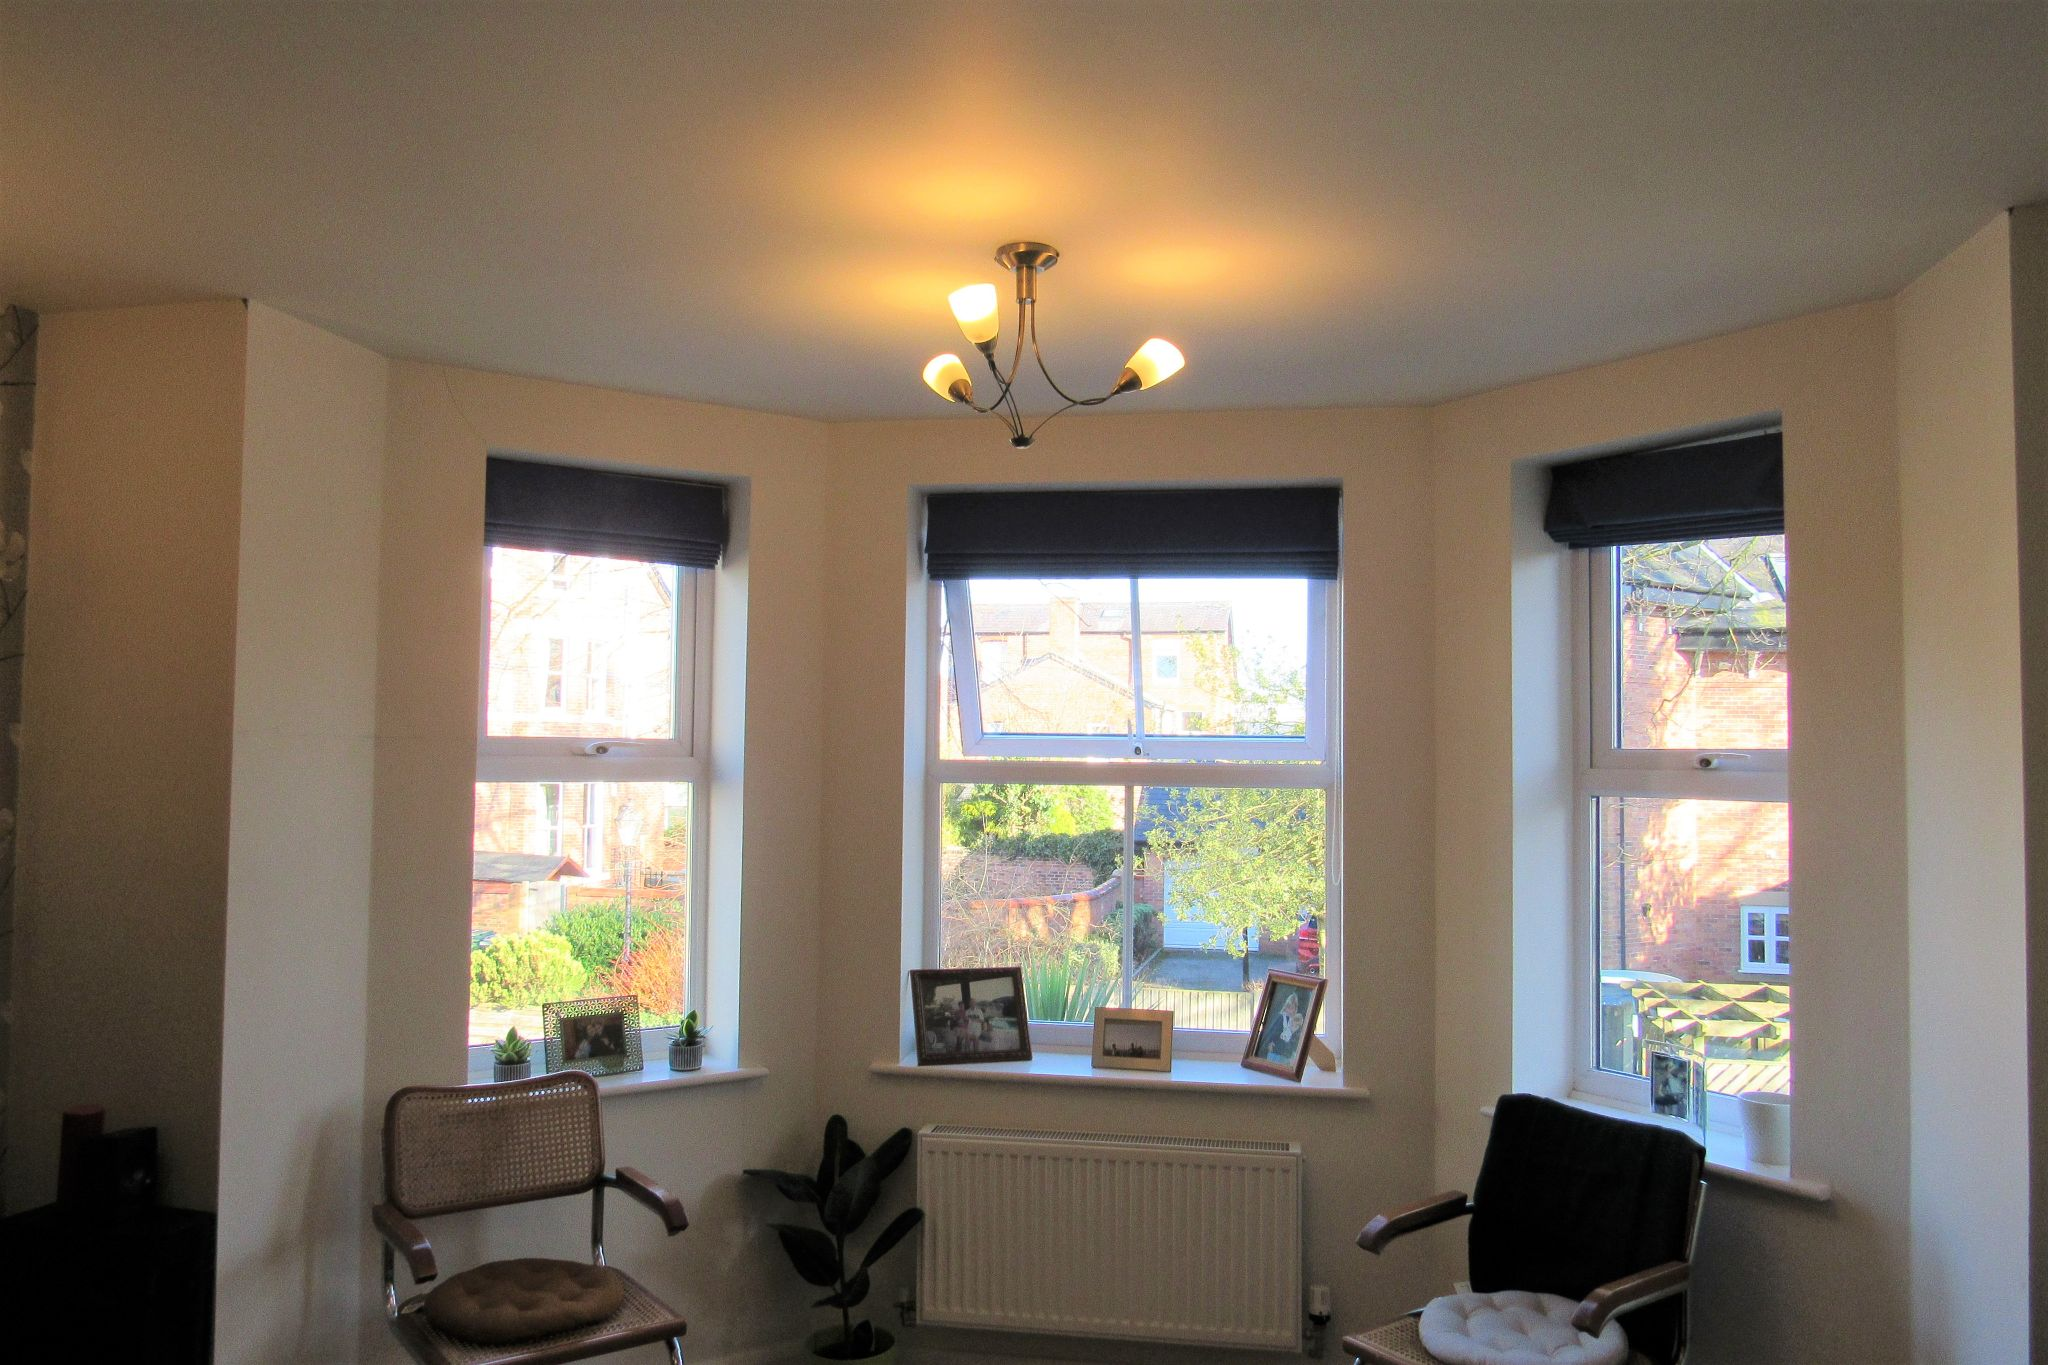 3 bedroom apartment flat/apartment SSTC in Sale - Photograph 20.